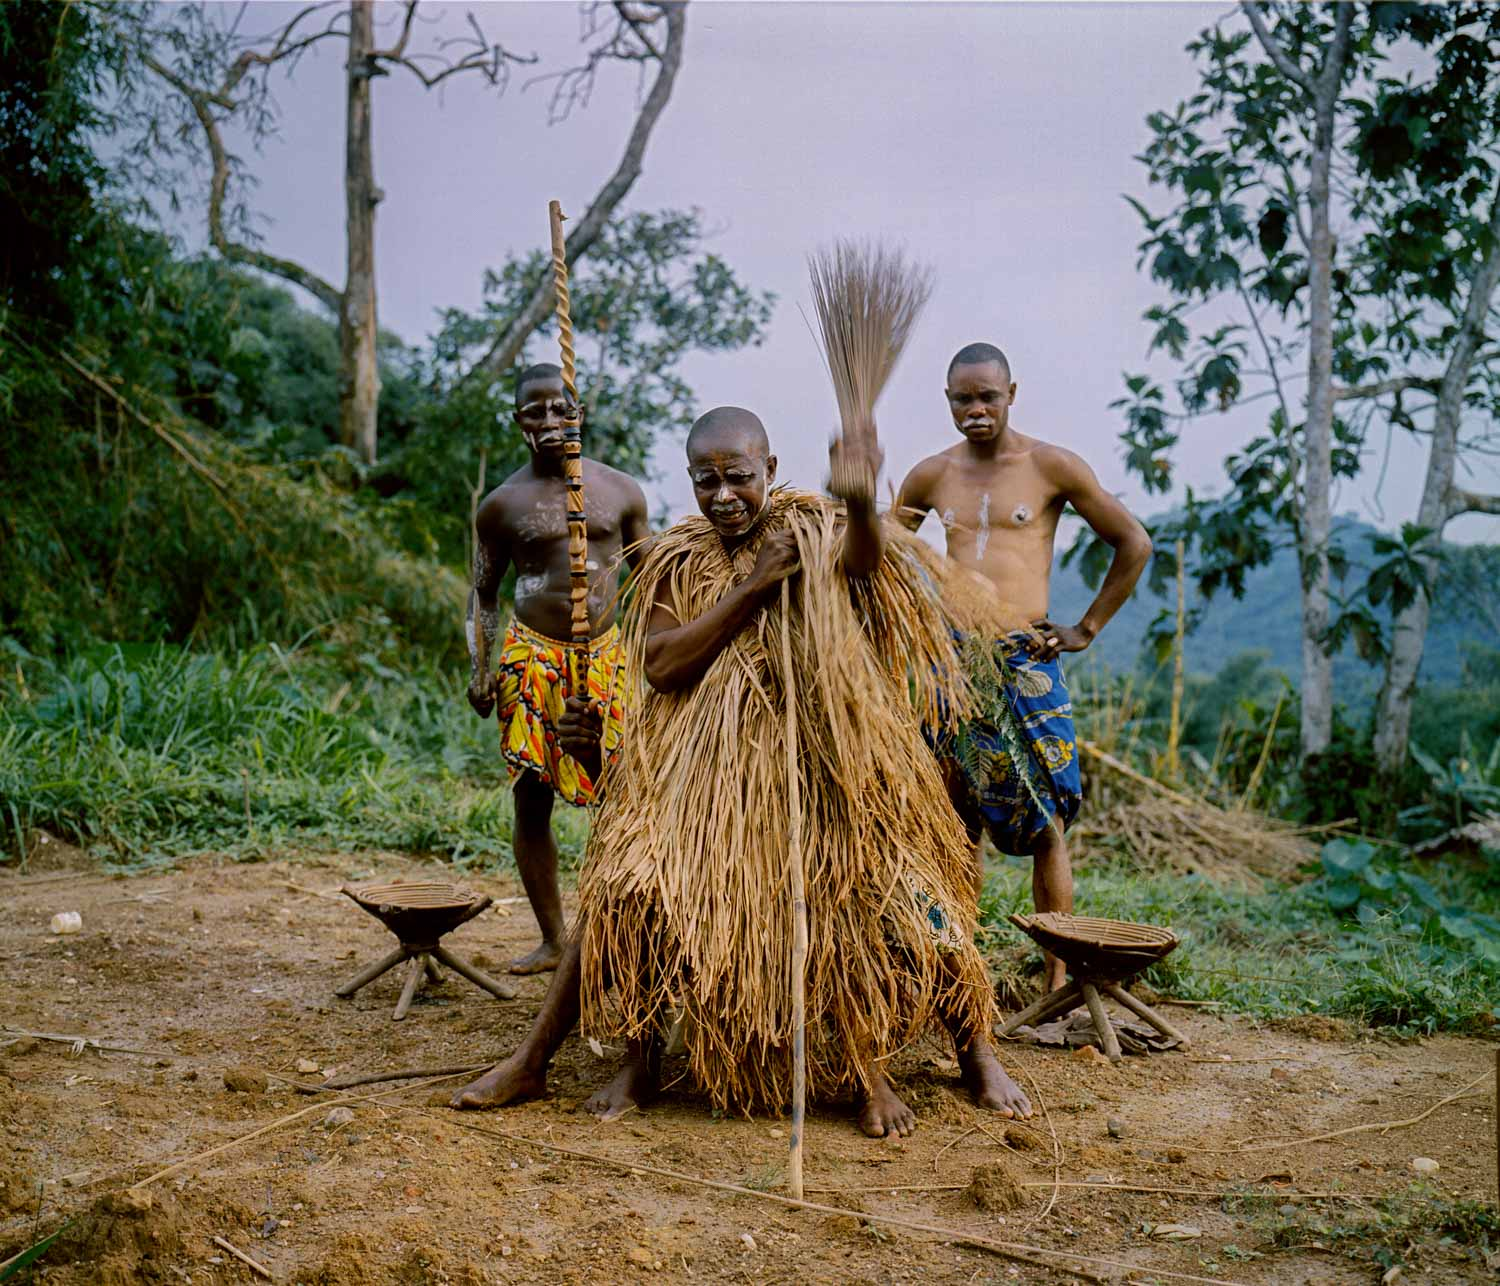 A traditional ceremony takes place outside the home of Lulingu's King Asani Keka Mbezi.  The Raia Mutomboki's members are ethnically part of the Lega tribe, known for its intact traditions and witchcraft.  The arrival of colonial Belgian powers and its western missionaries wiped out most traditions in Congo.  The remoteness of the Lega peoples, however, who inhabit the jungle areas in the east, allowed for the survival of their traditions. Dec., 2013. Lulingu, South Kivu, Democratic Republic of the Congo.